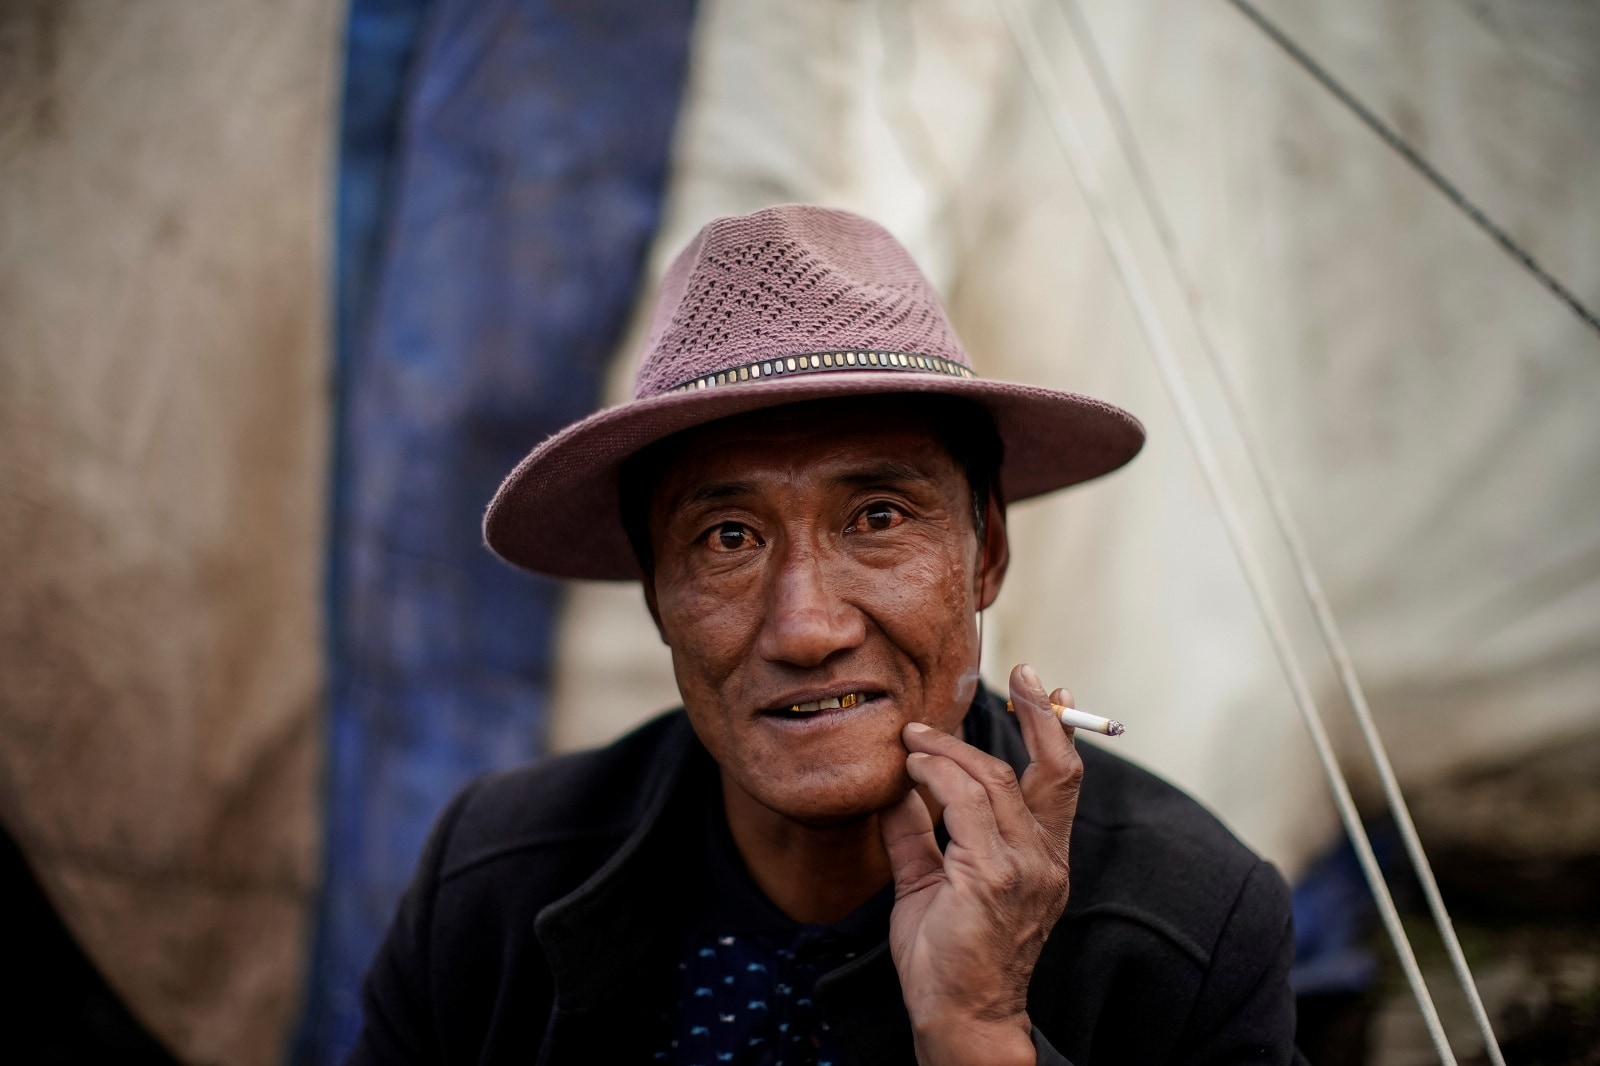 A Tibetan cordyceps picker smokes a cigarette at a base camp on a mountain in the Amne Machin range in China's western Qinghai province, June 7, 2019. REUTERS/Aly Song